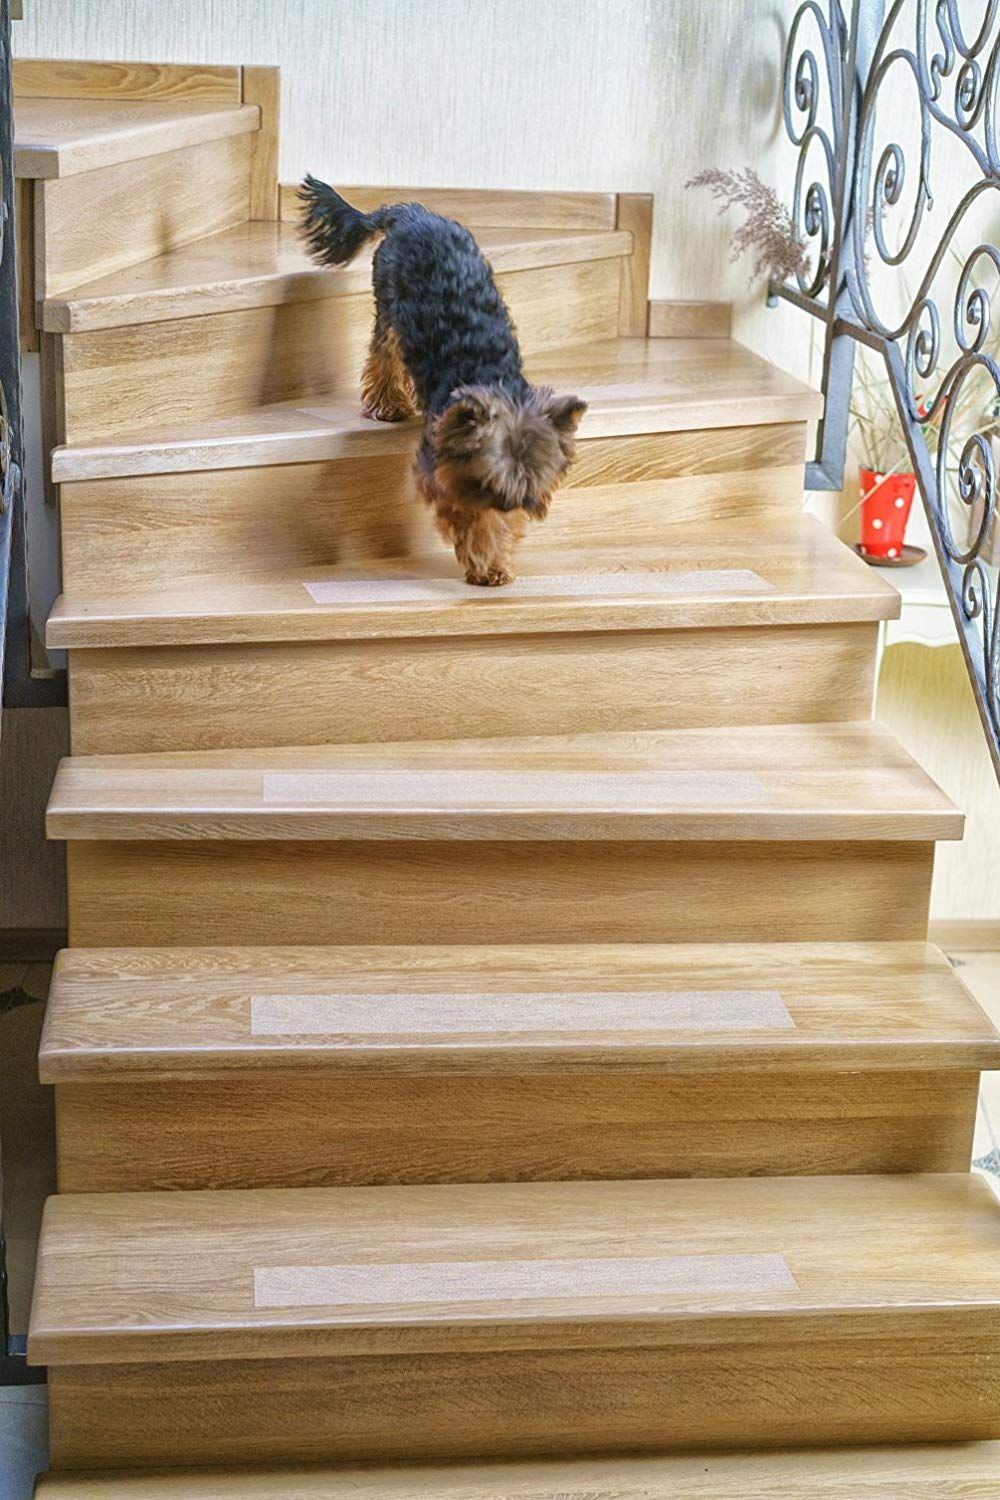 Kenley Non Slip Stair Treads 10 Pack Clear Step Strips 4 X24 | Dog Slipping On Wood Stairs | Steps | Hardwood Floors | Self Adhering | Hardwood | Puppy Treads